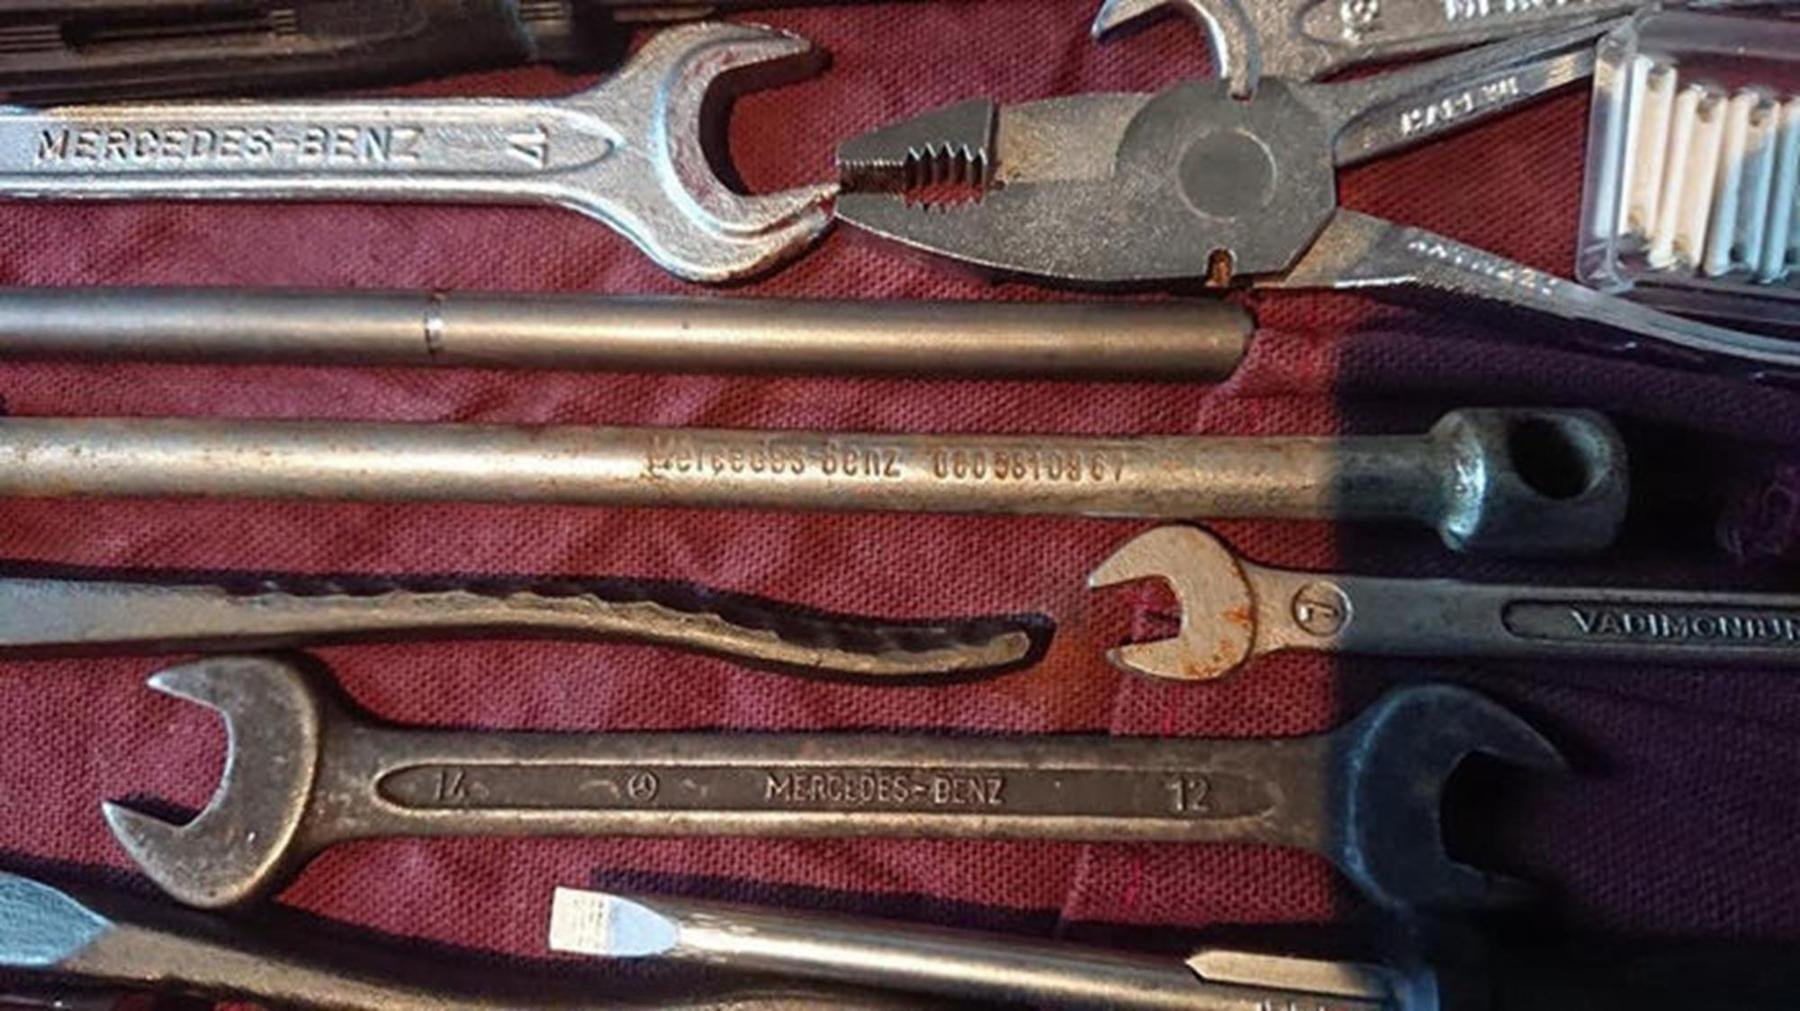 Original Mercedes Benz tool kit w123 w124 w126 w10 For Sale (picture 3 of 6)